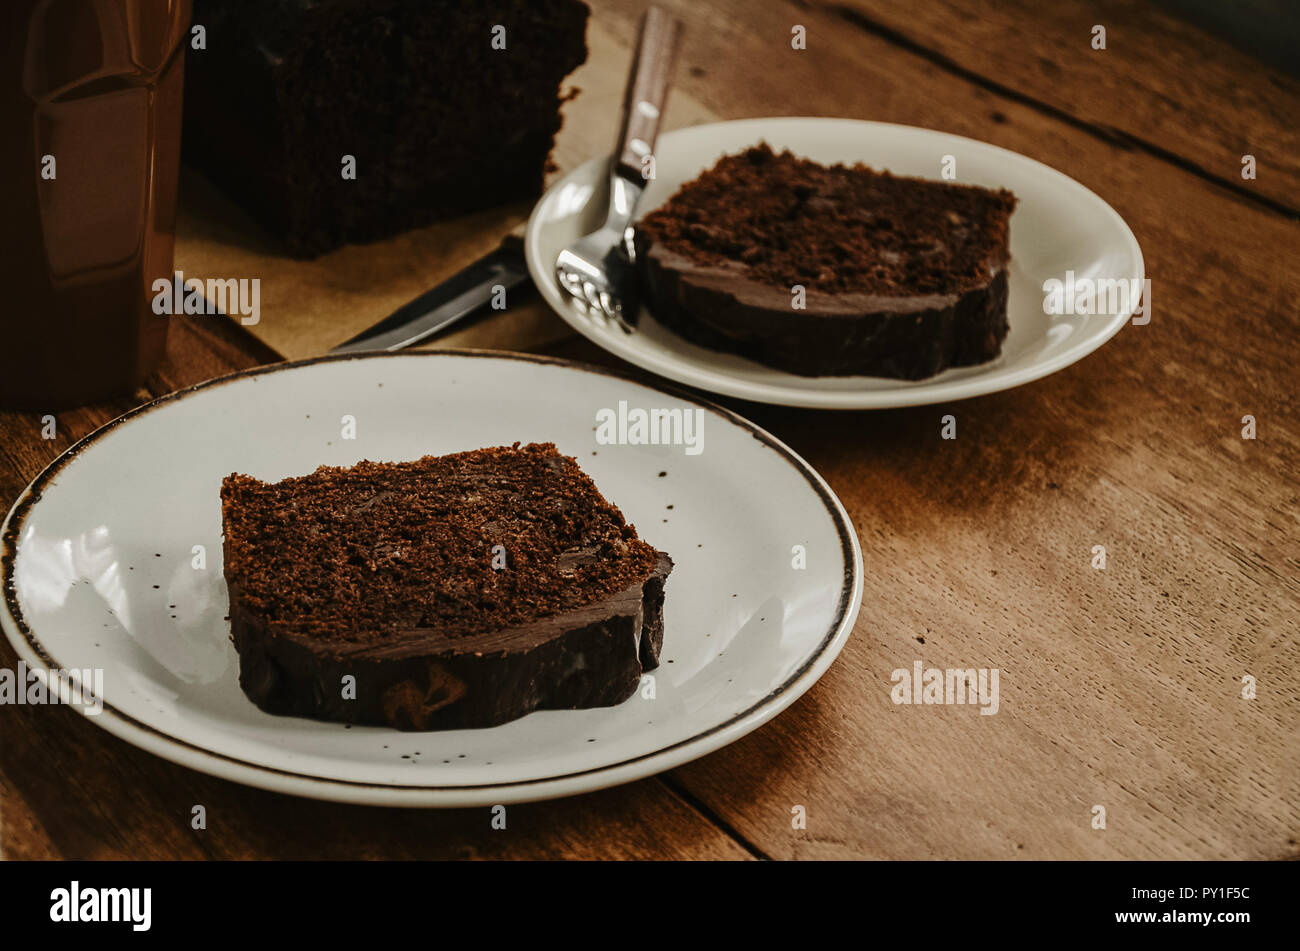 Chocolate pound cake pieces on white plates. Brown toned, wooden background. Stock Photo